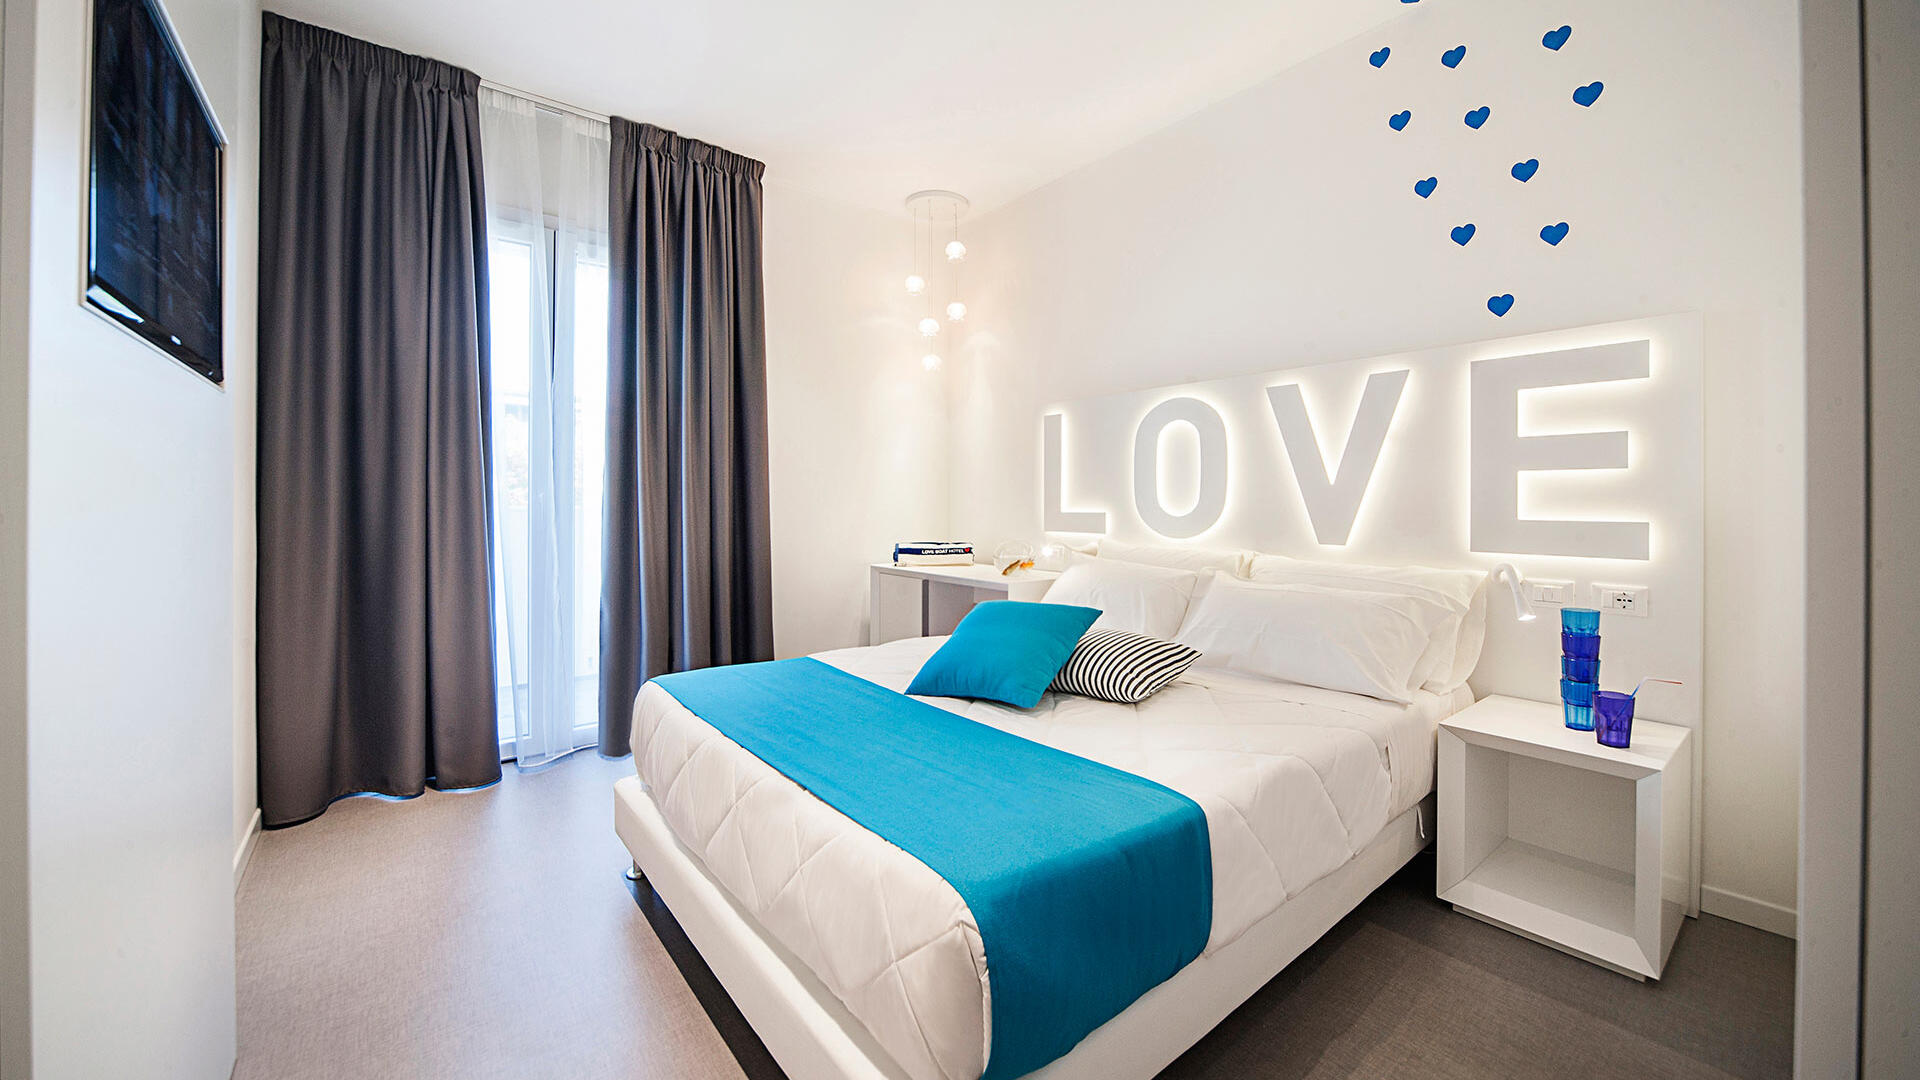 hotelloveboat it camere 005